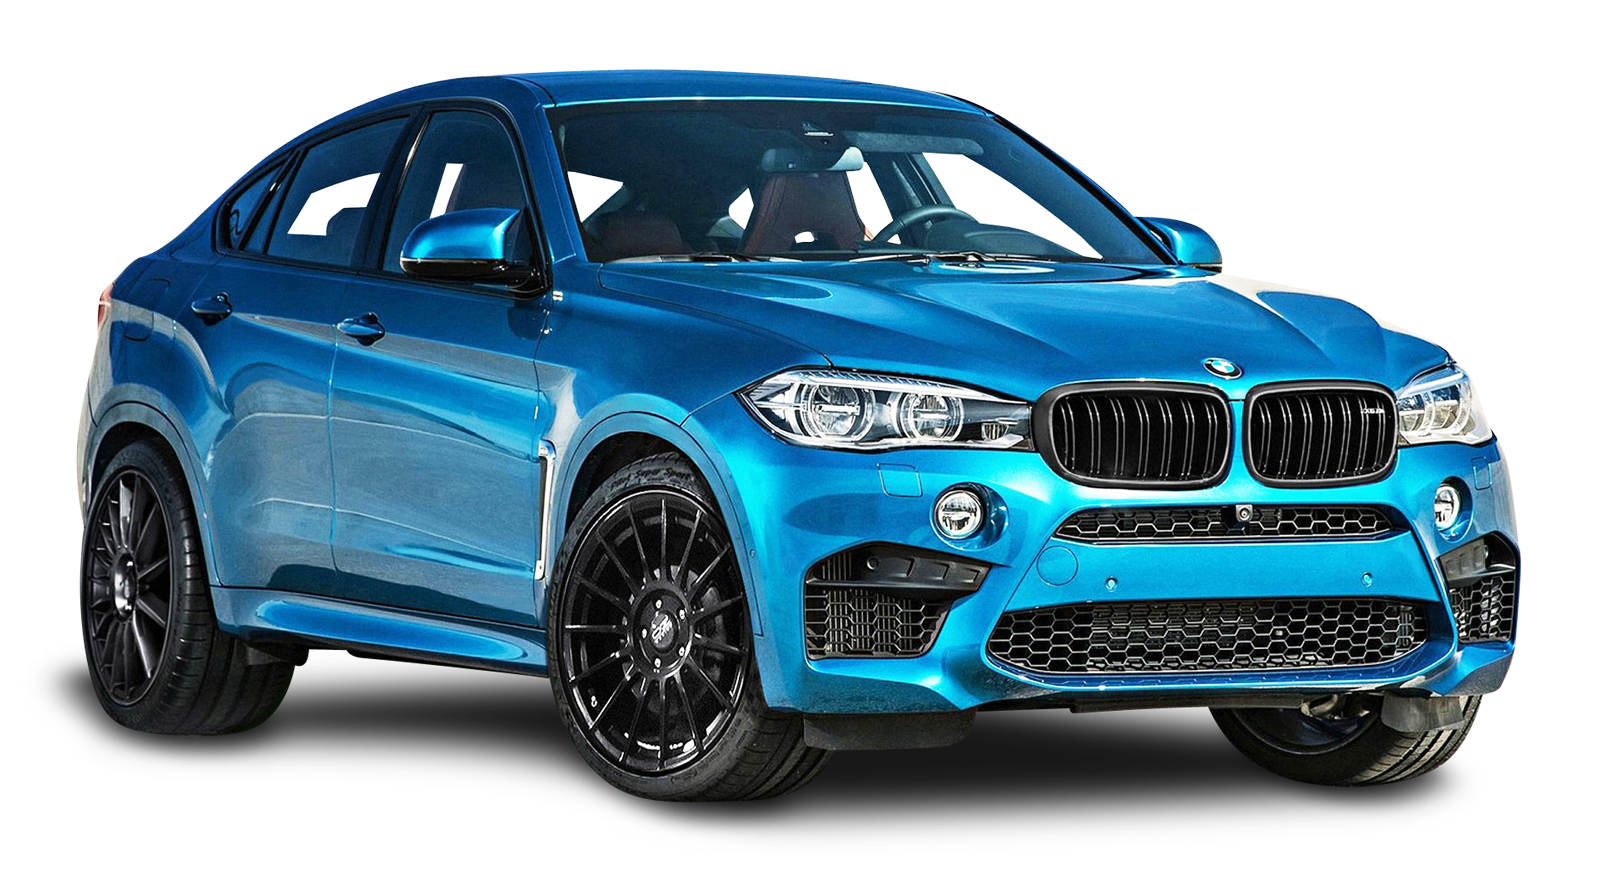 Bmw x6 PNG Images.